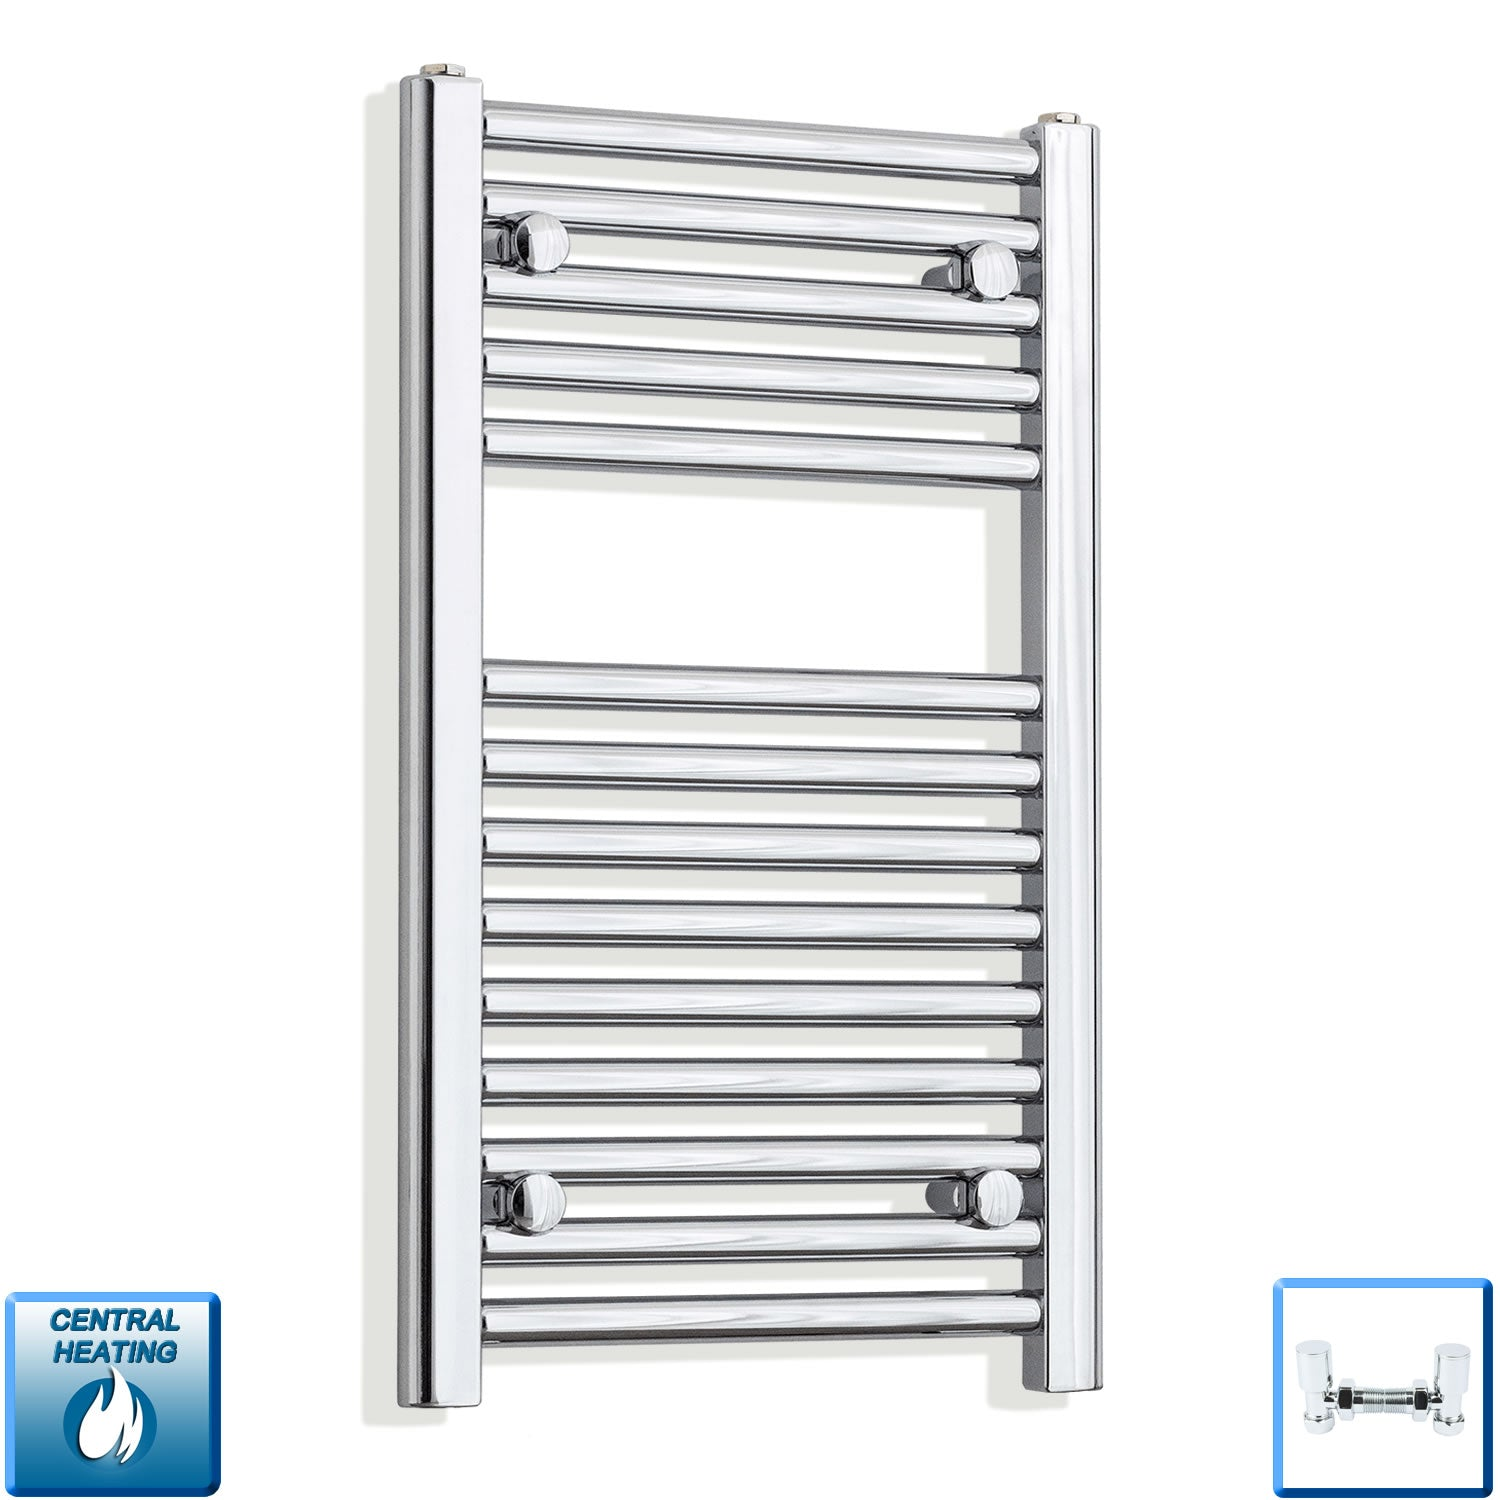 400mm Wide 678mm High Straight Chrome Heated Towel Rail Radiator